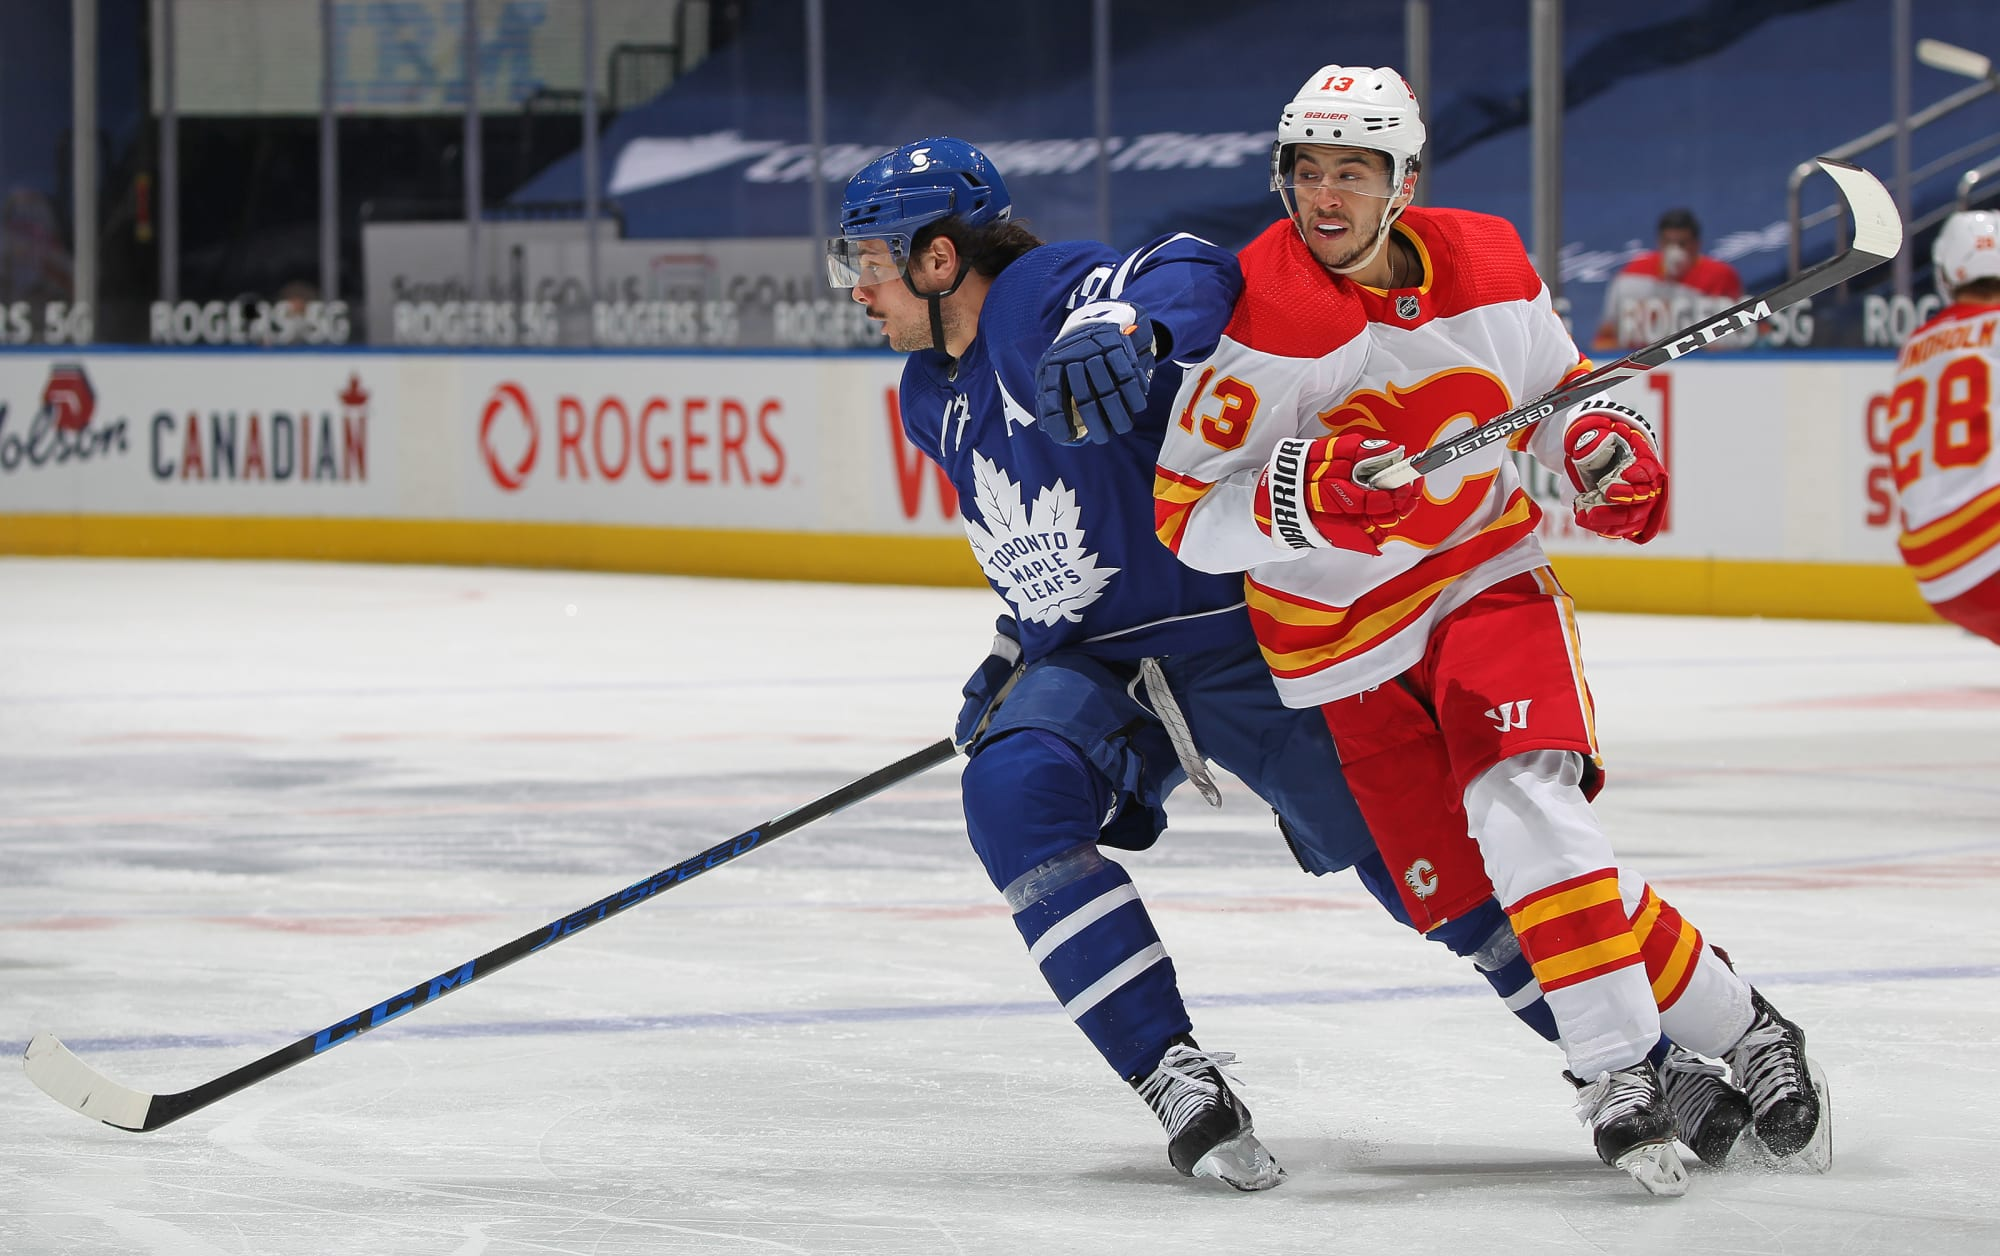 Should the Toronto Maple Leafs Trade for Johnny Gaudreau?